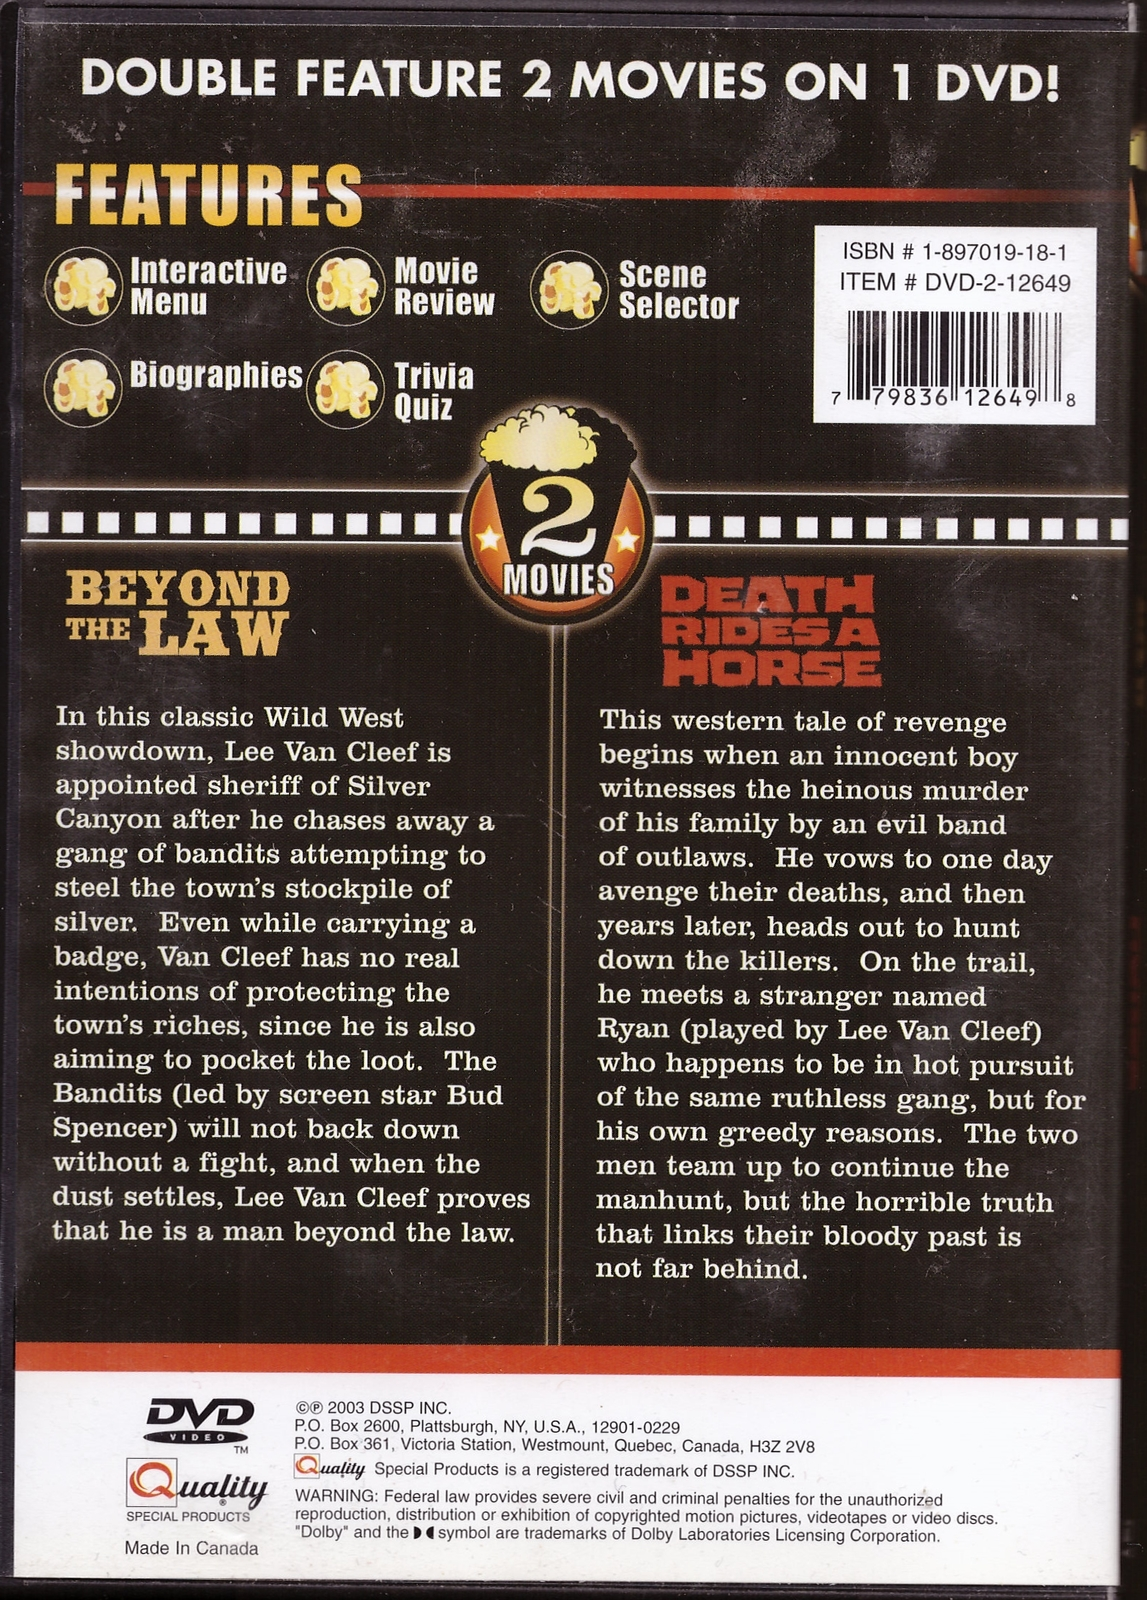 Beyond the Law, Death Rides a Horse DVD Double Feature Lee Van Cleef Western